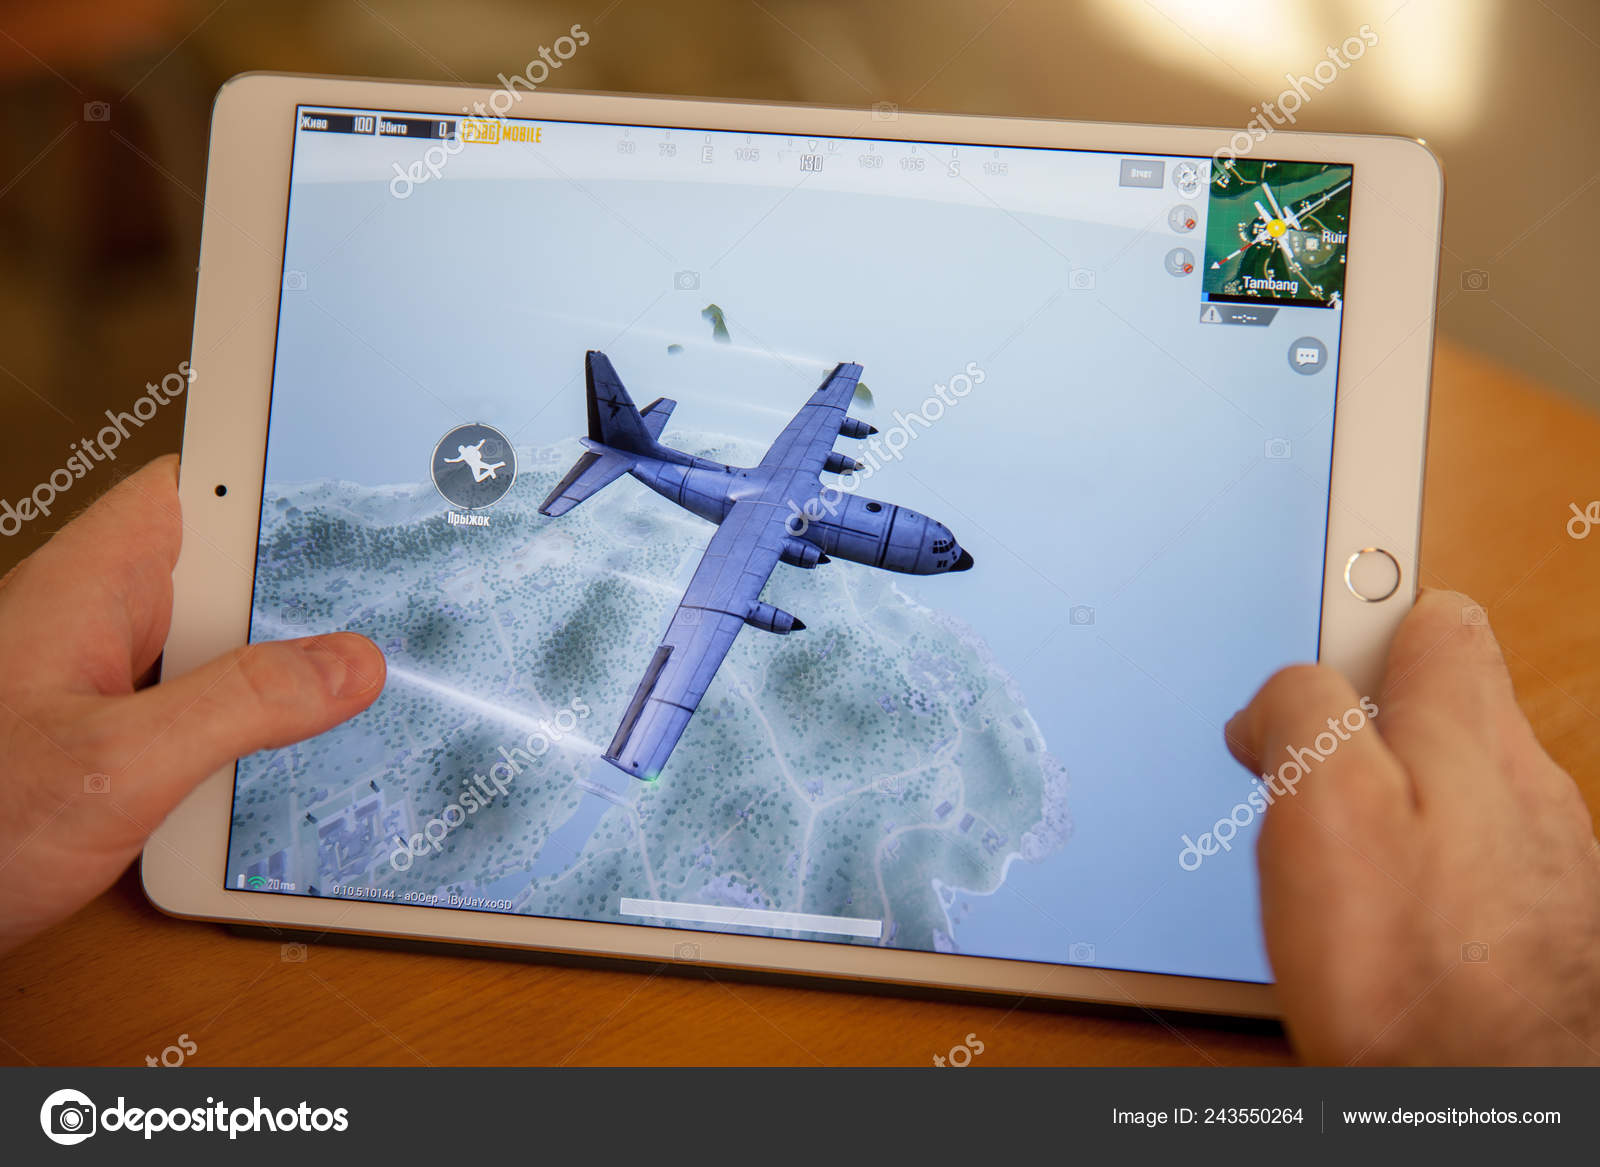 Pubg Tablet Game — Stock Photo © Ahilfoto #243550264